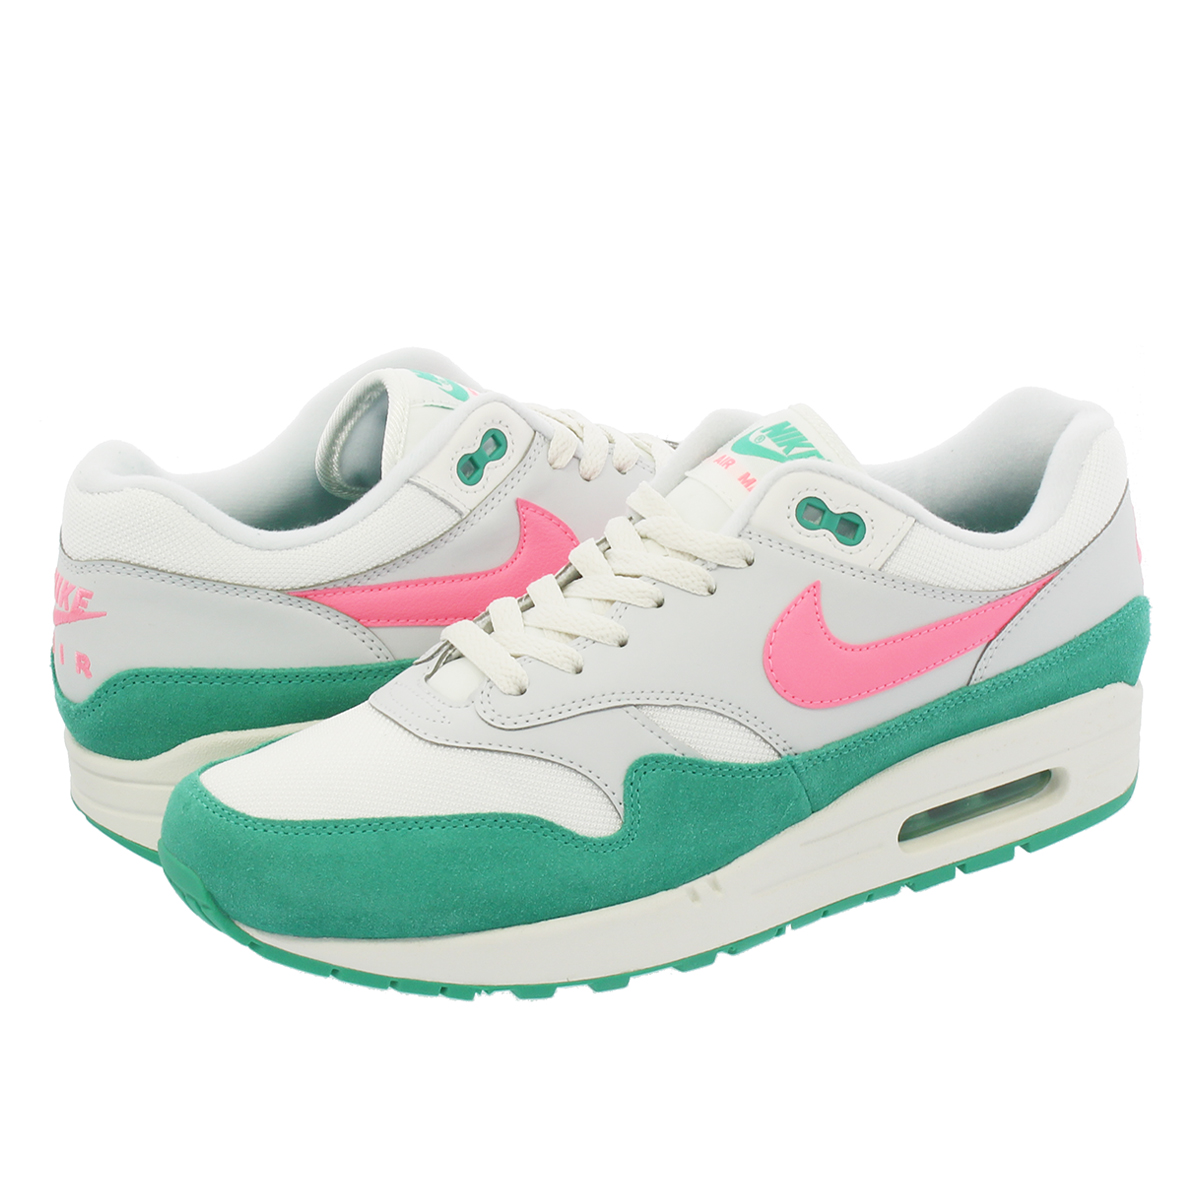 NIKE AIR MAX 1 Kie Ney AMAX 1 SUMMIT WHITE SUNSET PULSE KINETIC GREEN f962b3930a1d